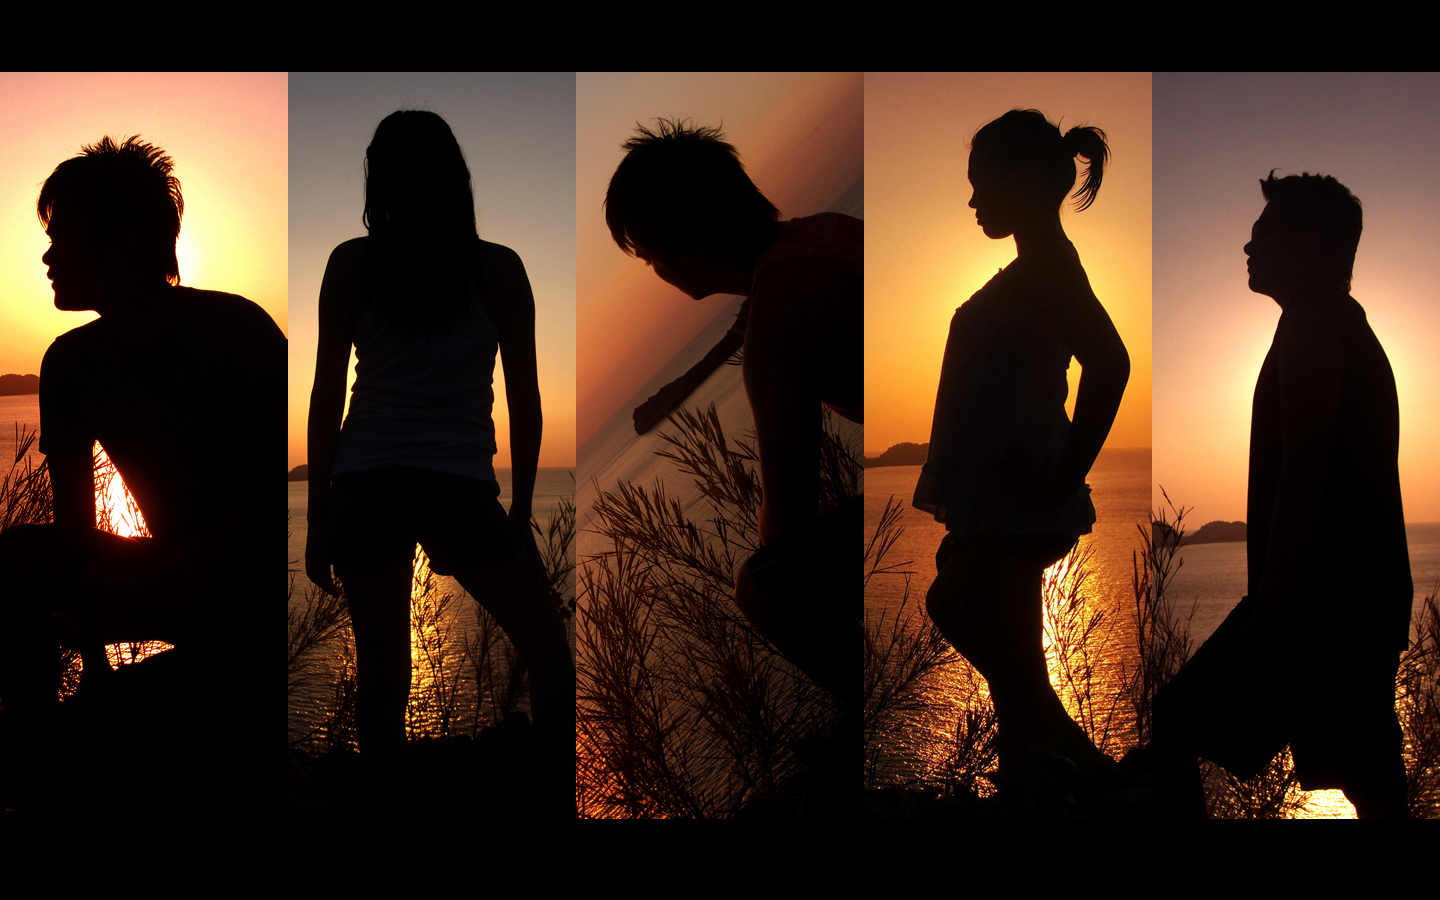 sunset silhouettes by countocram HD Wallpaper